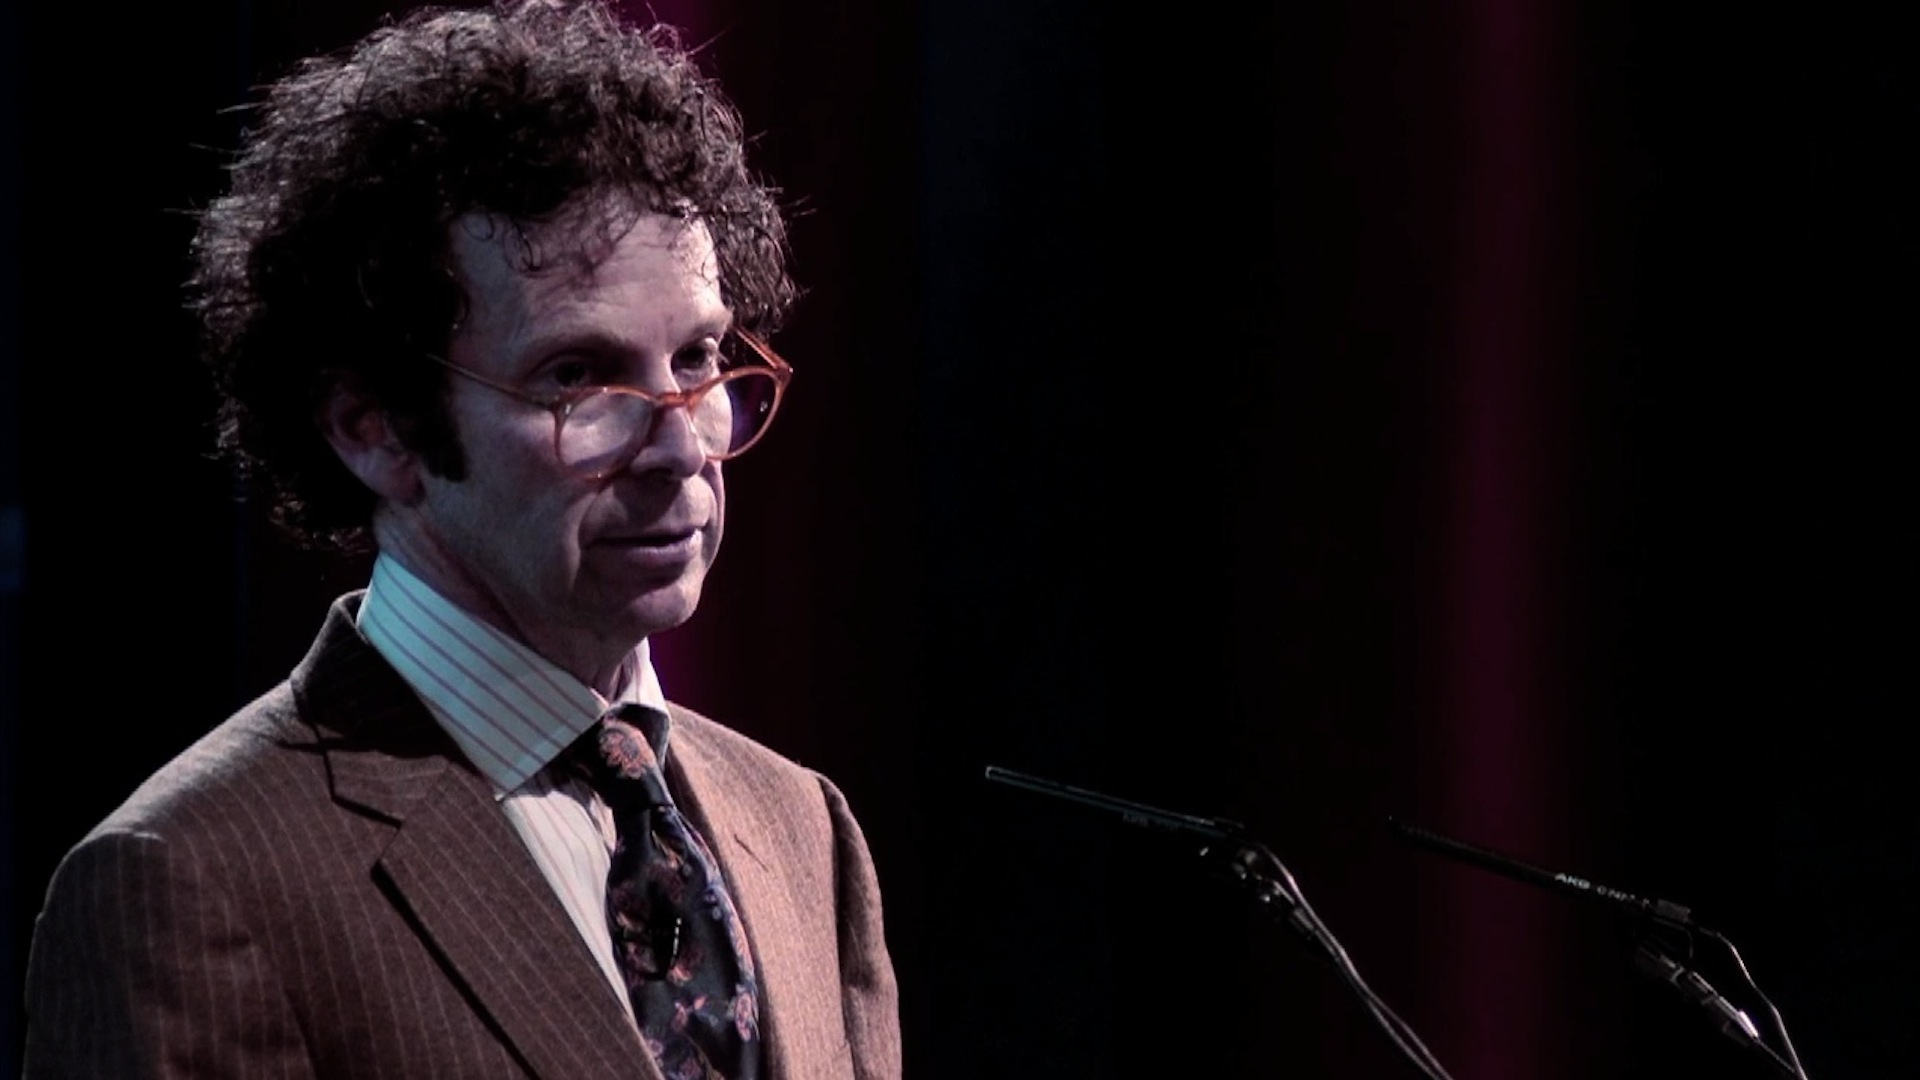 'Our Common Humanity and Vulnerability': Charlie Kaufman's BAFTA Screenwriters' Lecture